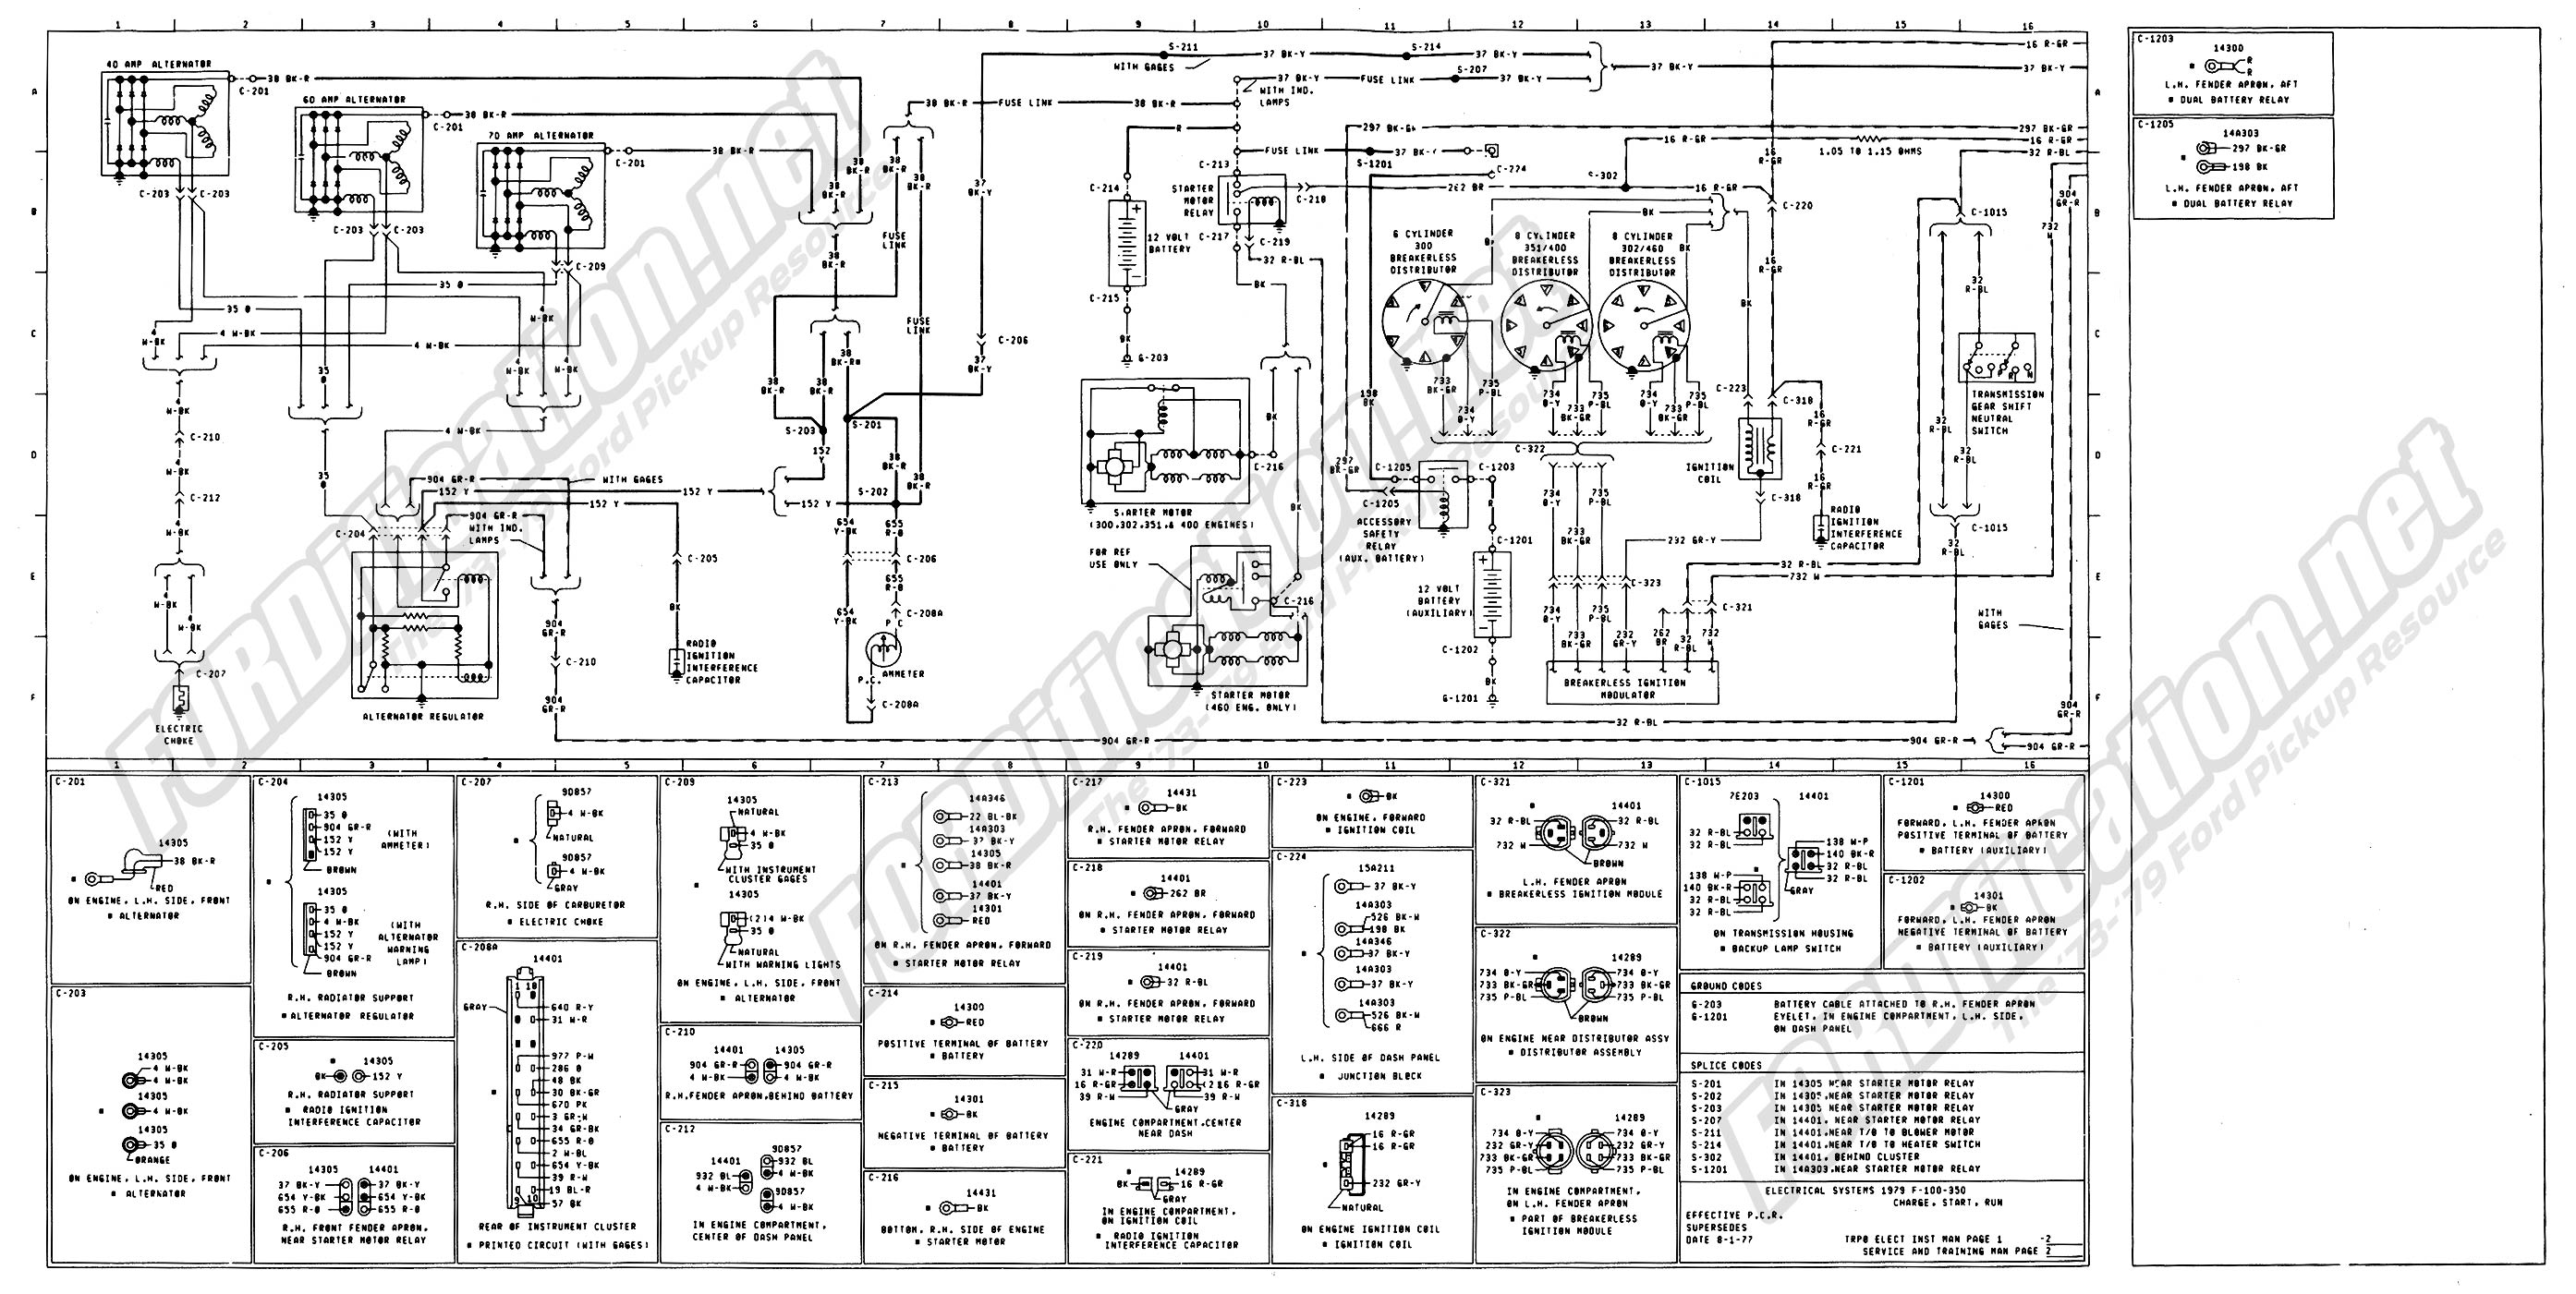 wiring_79master_2of9 1979 ford f150 wiring diagram 1979 ford f150 fuse diagram \u2022 wiring fordification wiring diagram at gsmportal.co